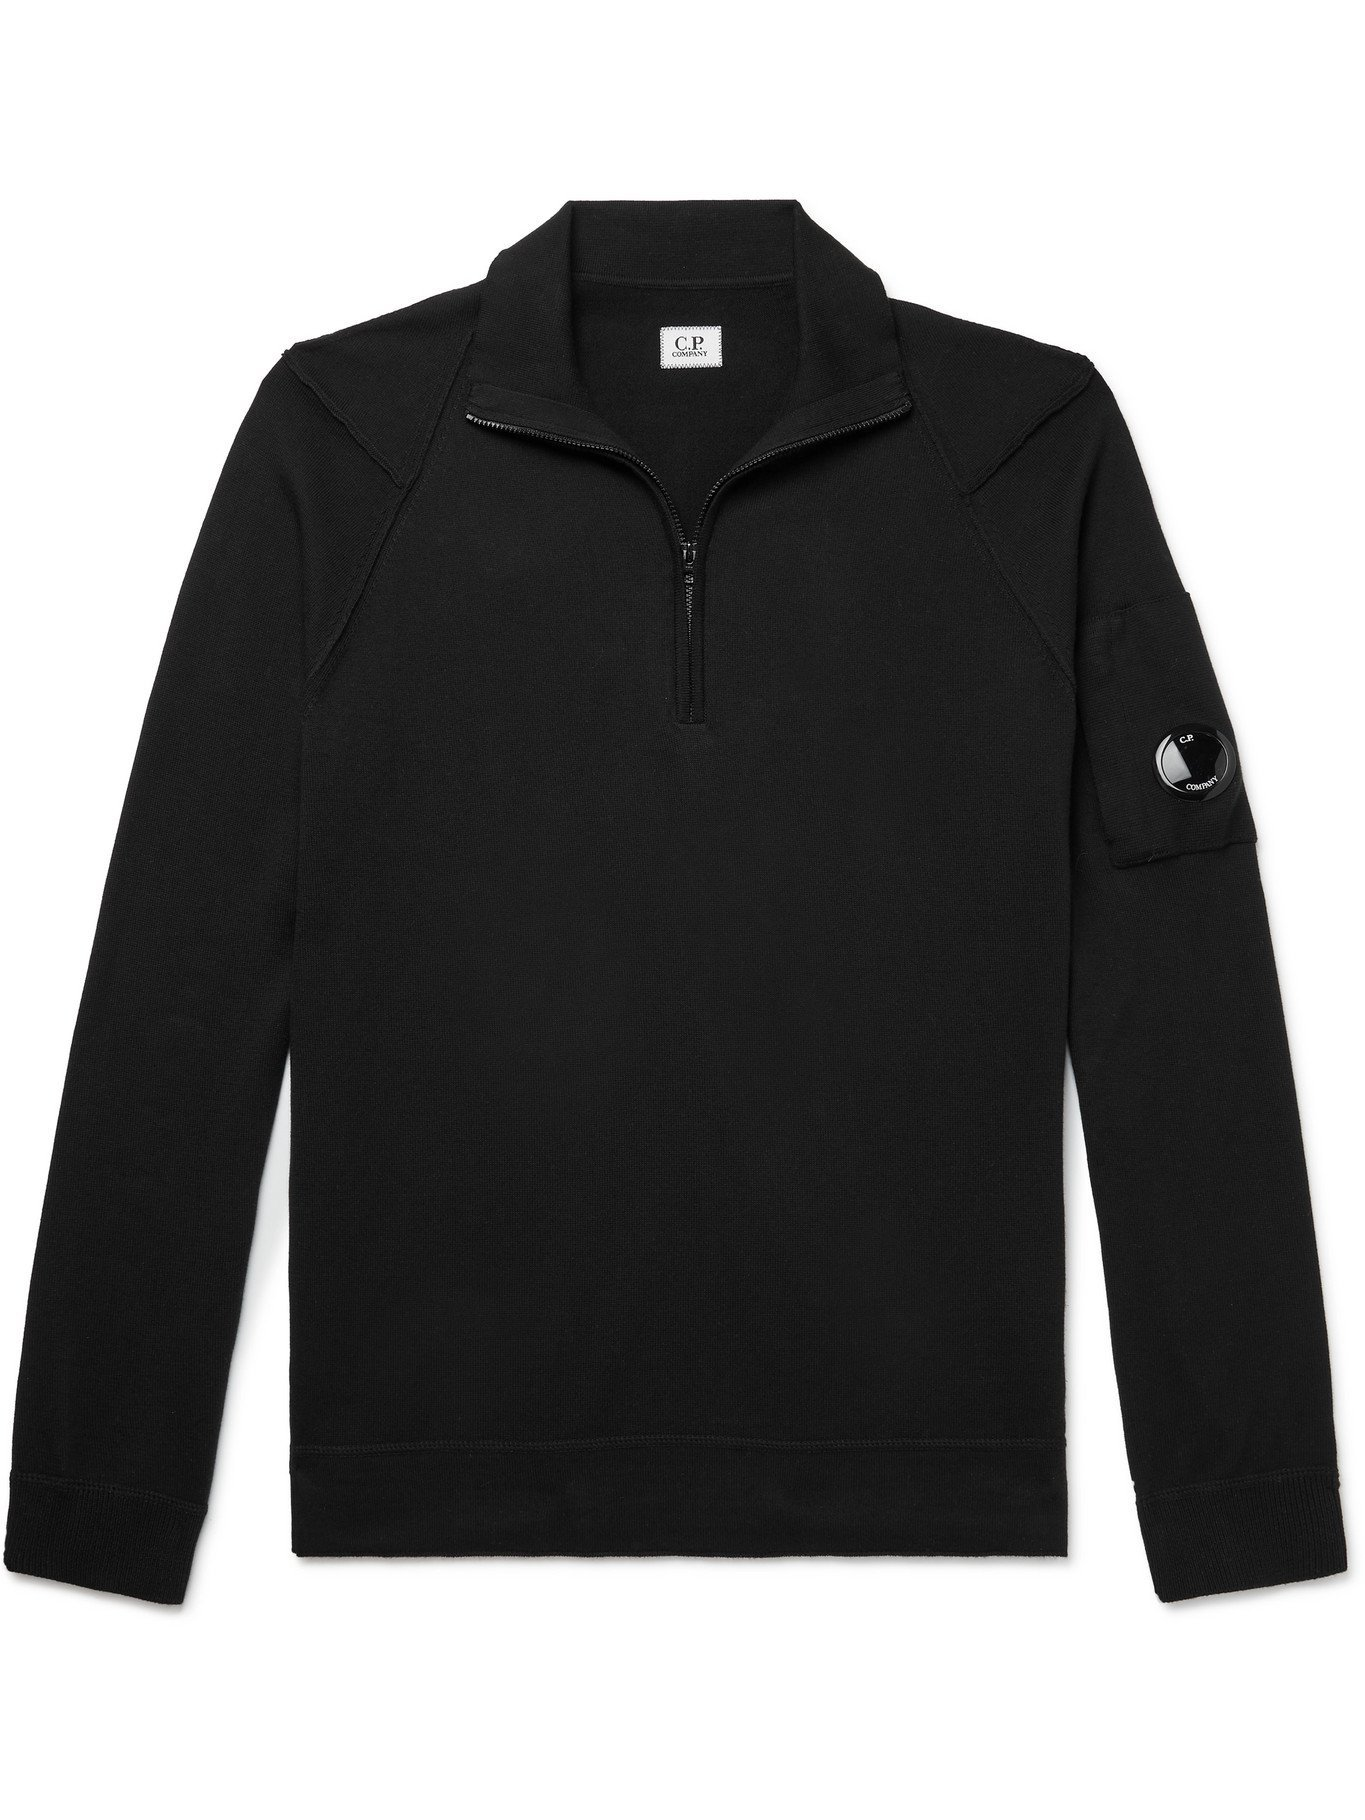 Photo: C.P. COMPANY - Sea Island Cotton Half-Zip Sweater - Black - IT 48